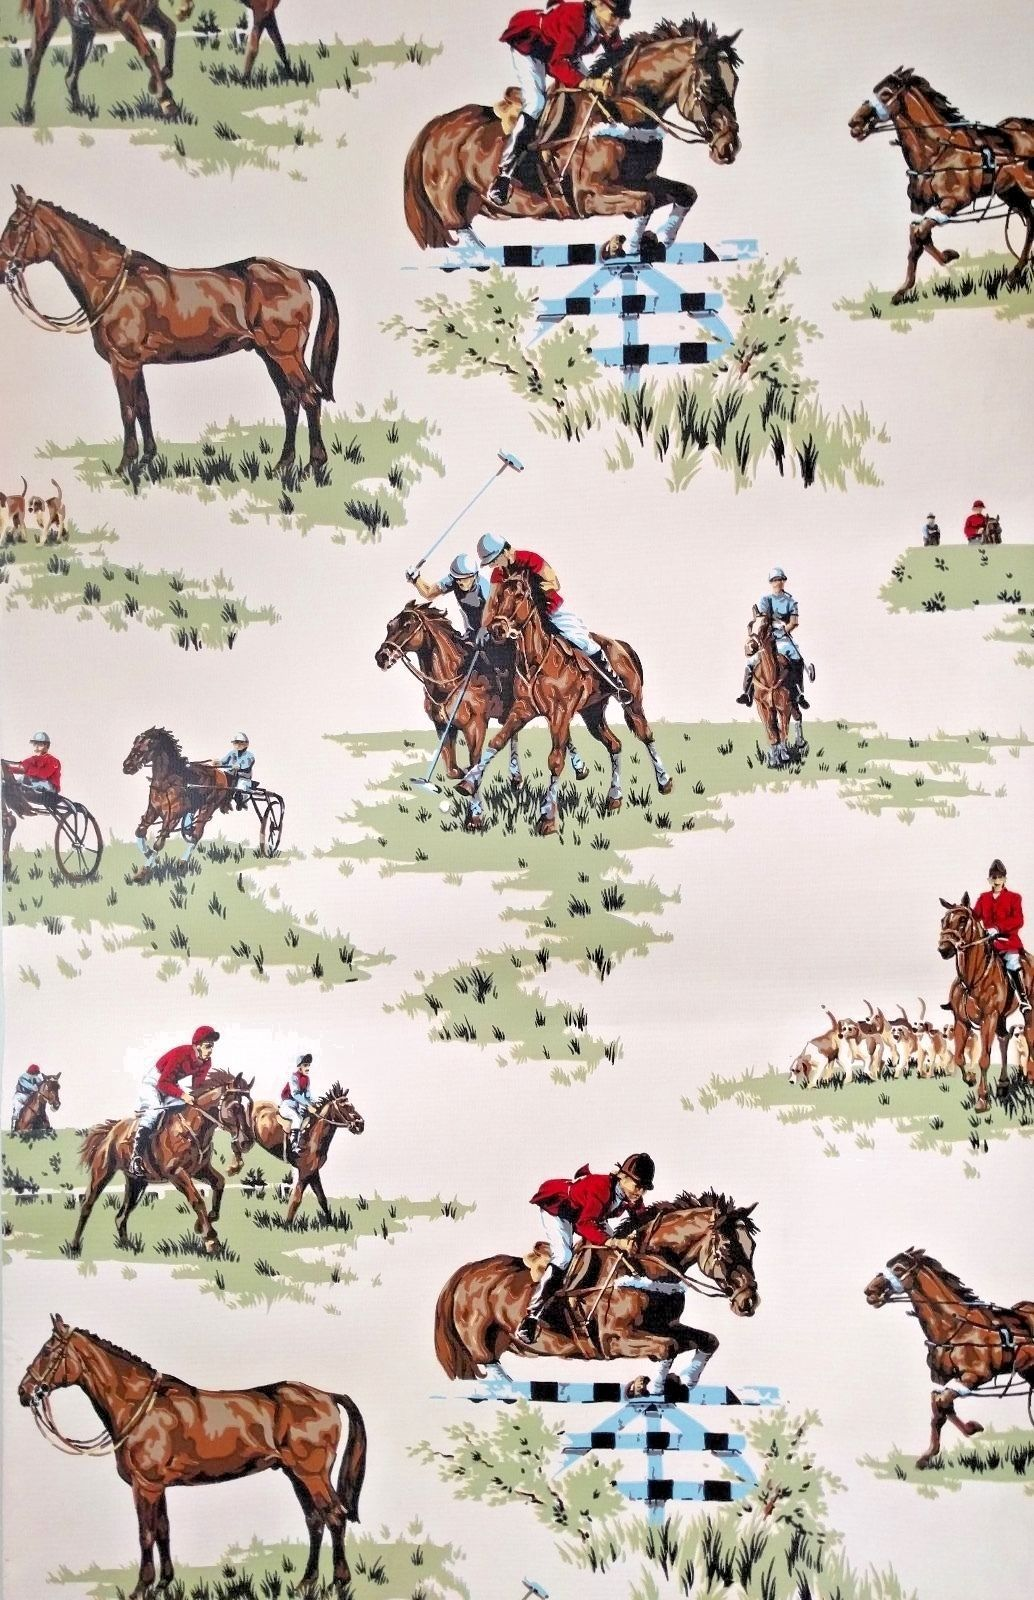 Peel And Stick Removable Wallpaper Equestrian Horse Fox Hunter Hound Saddle Pony Ebay Horse Wallpaper Vintage Wallpaper Equestrian Decor